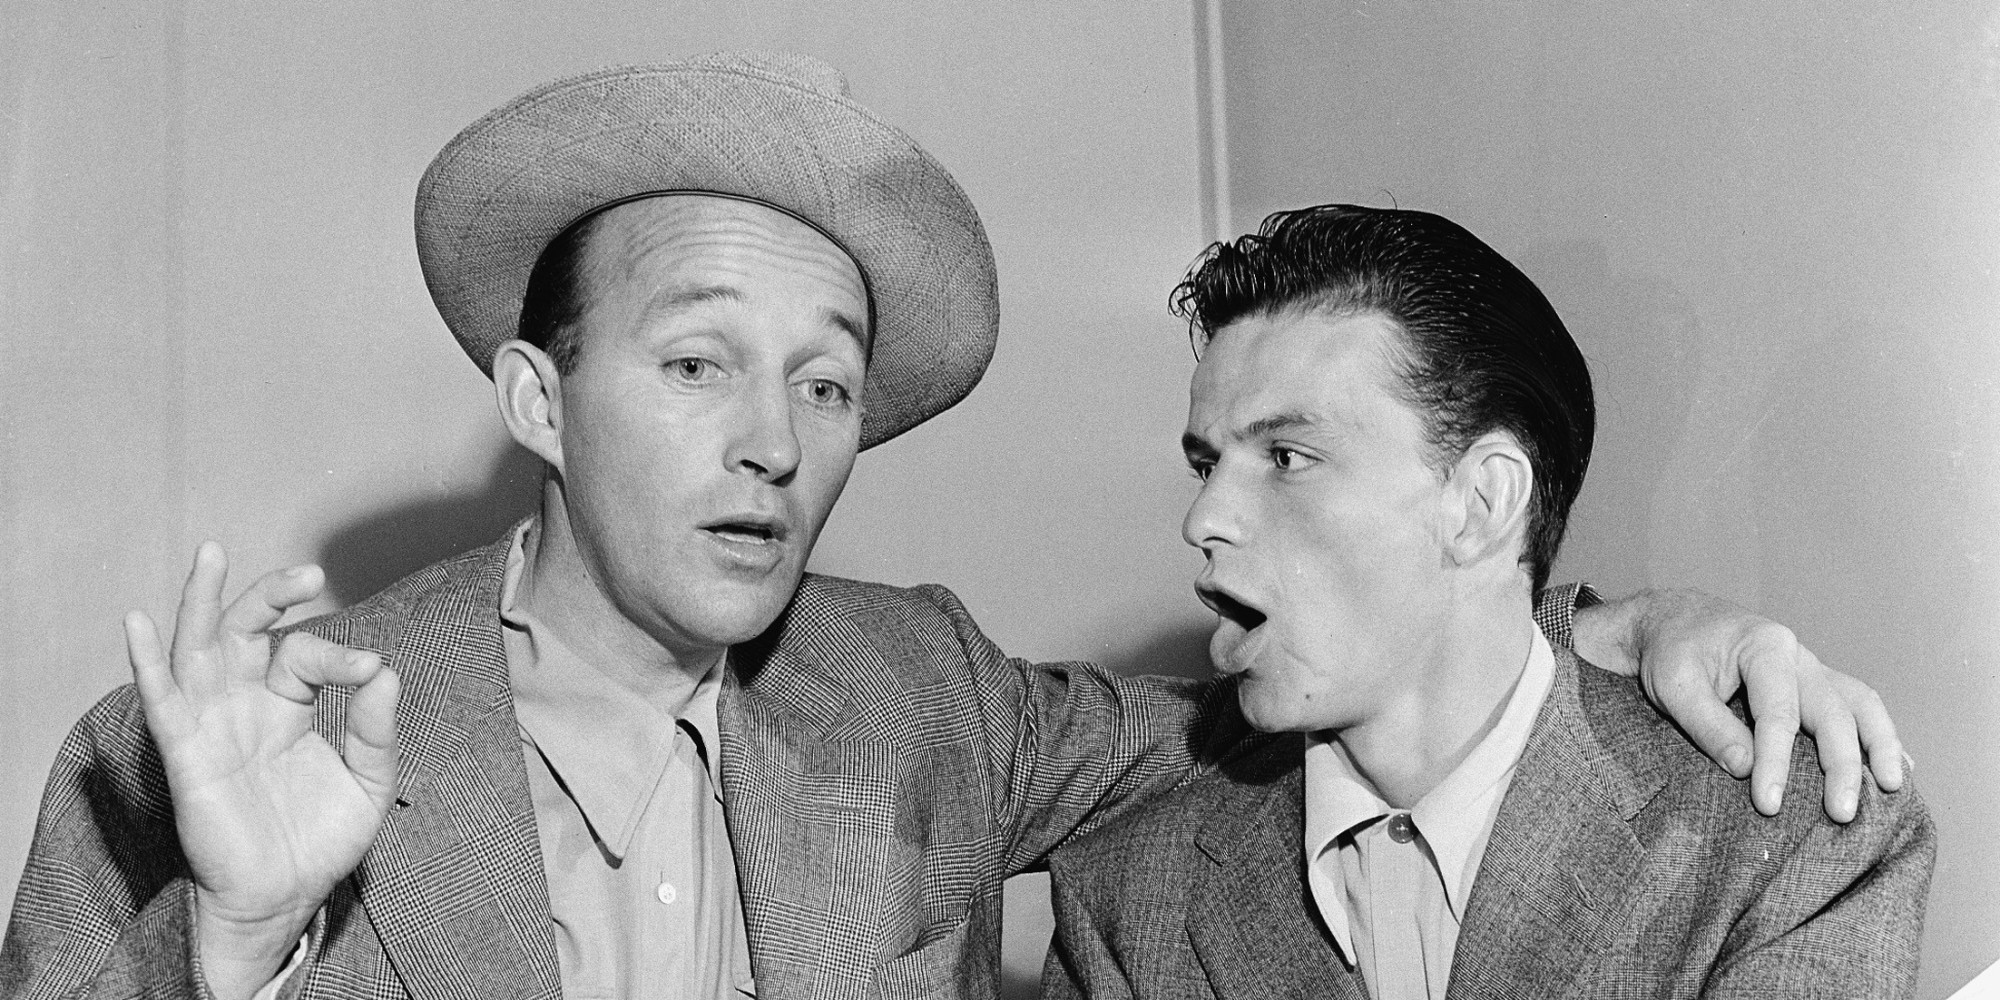 Bing Crosby, left, and Frank Sinatra break out in song in Bing's dressing room between radio programs in Hollywood, Ca., Sept. 12, 1943.  (AP Photo)